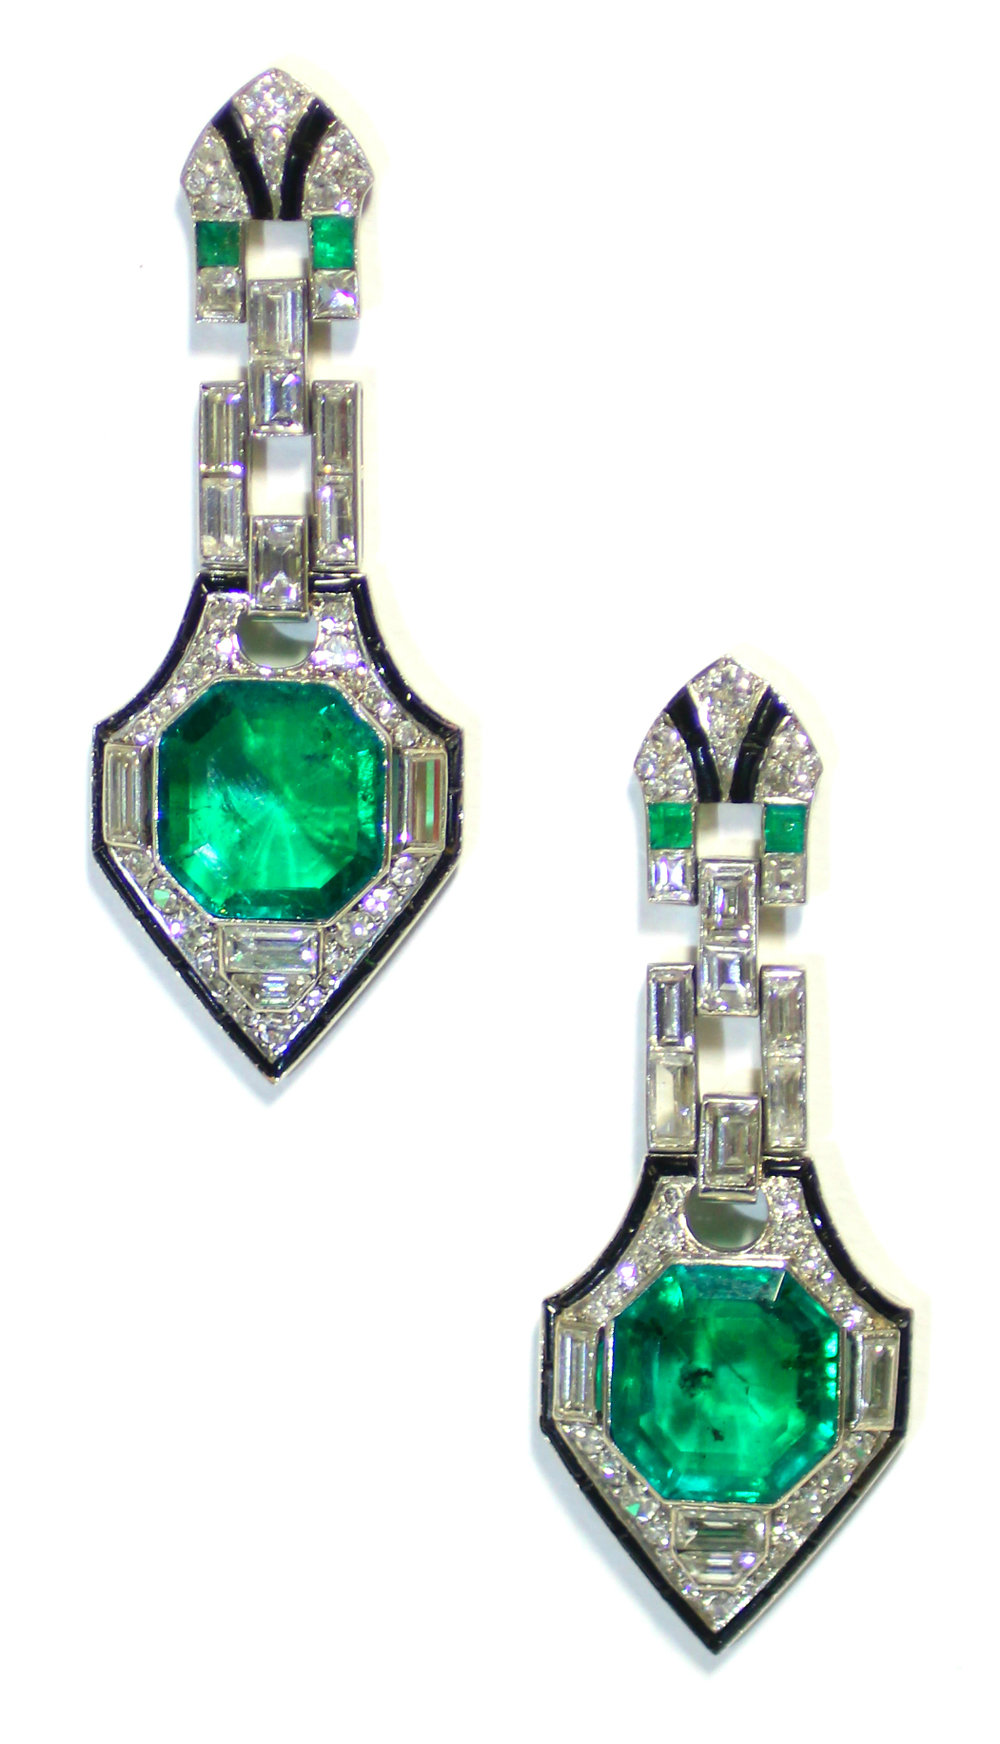 Sold For £48,000  A pair of Art Deco Emerald, Diamond & Black Onyx earrings